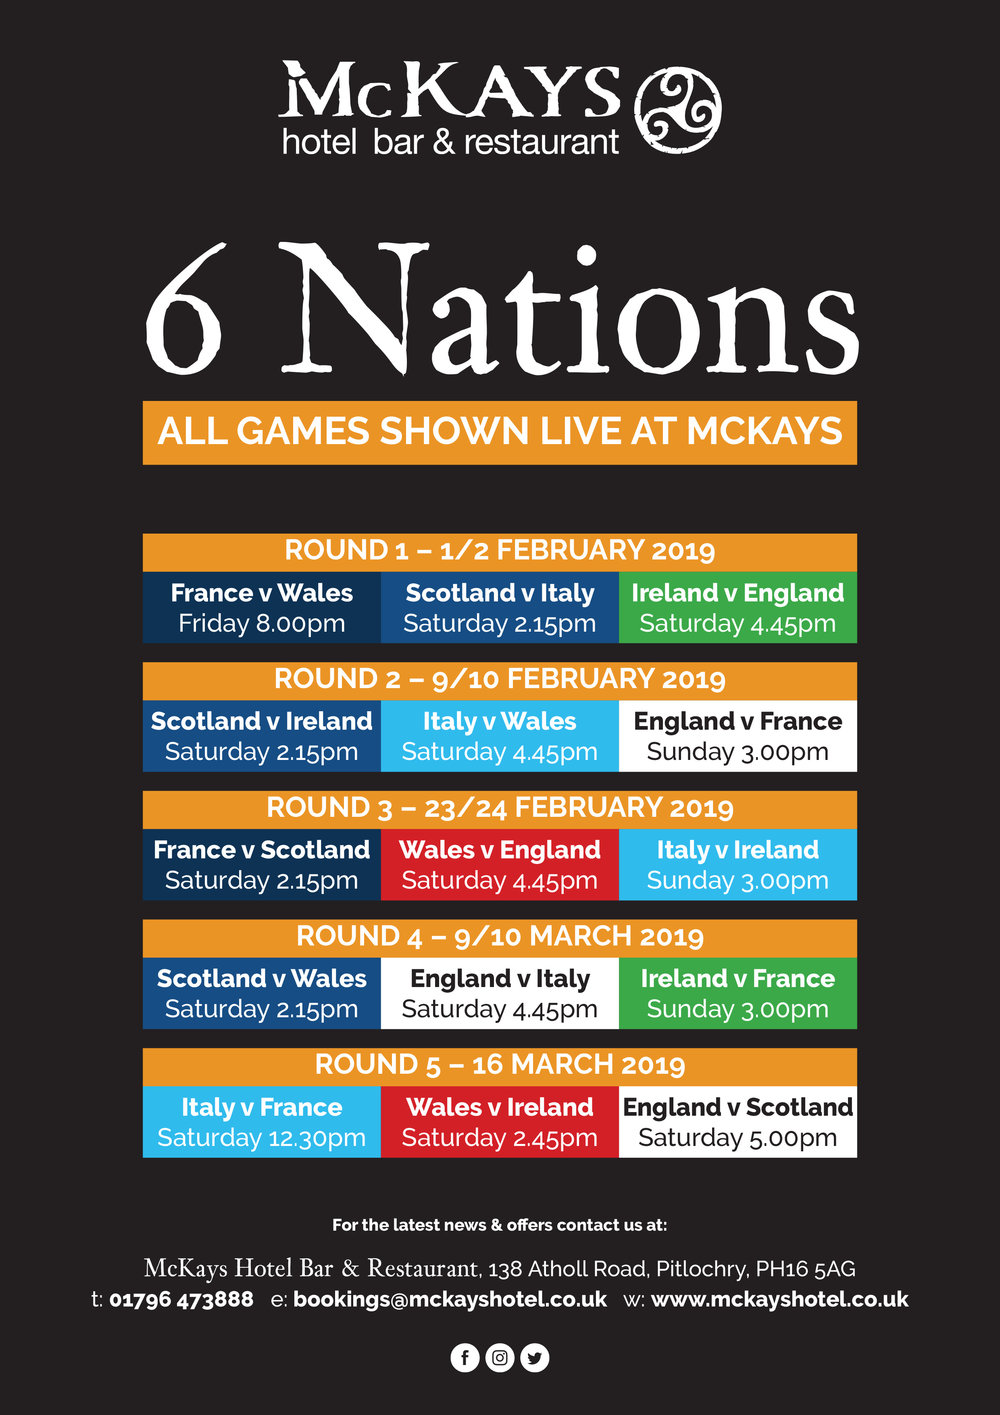 McKays-6-Nations-2019.jpg